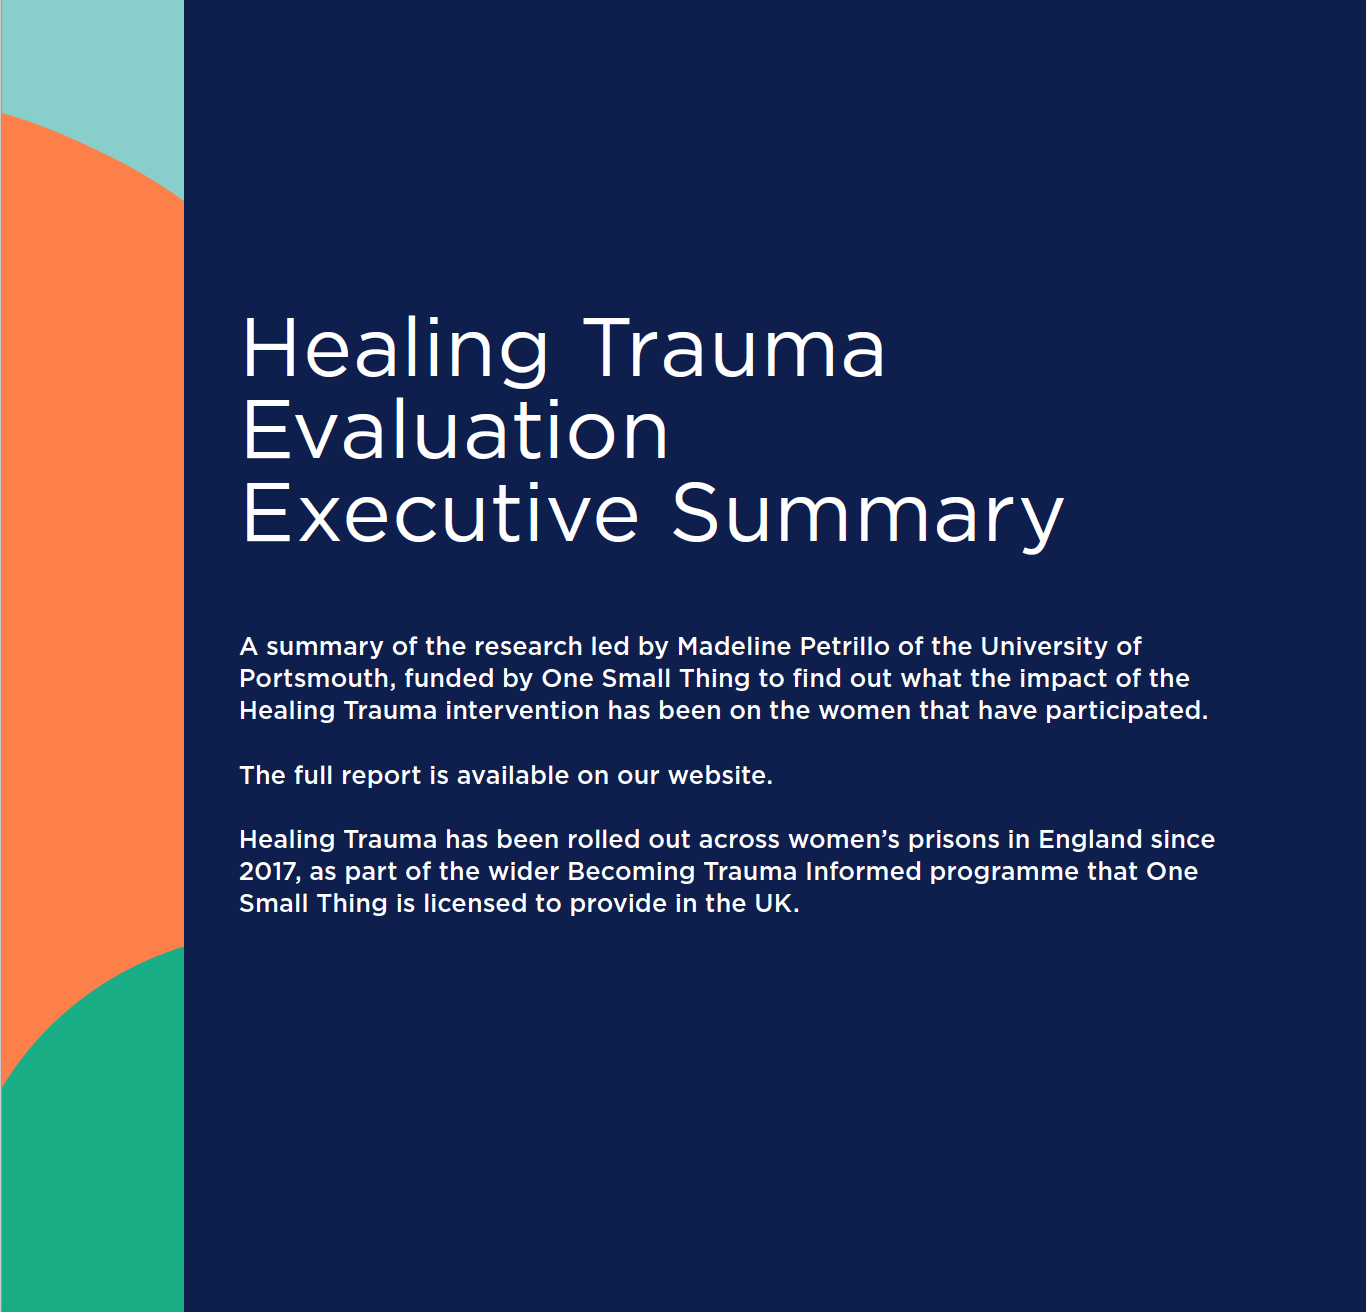 HEALING TRAUMA RESEARCH — One Small Thing